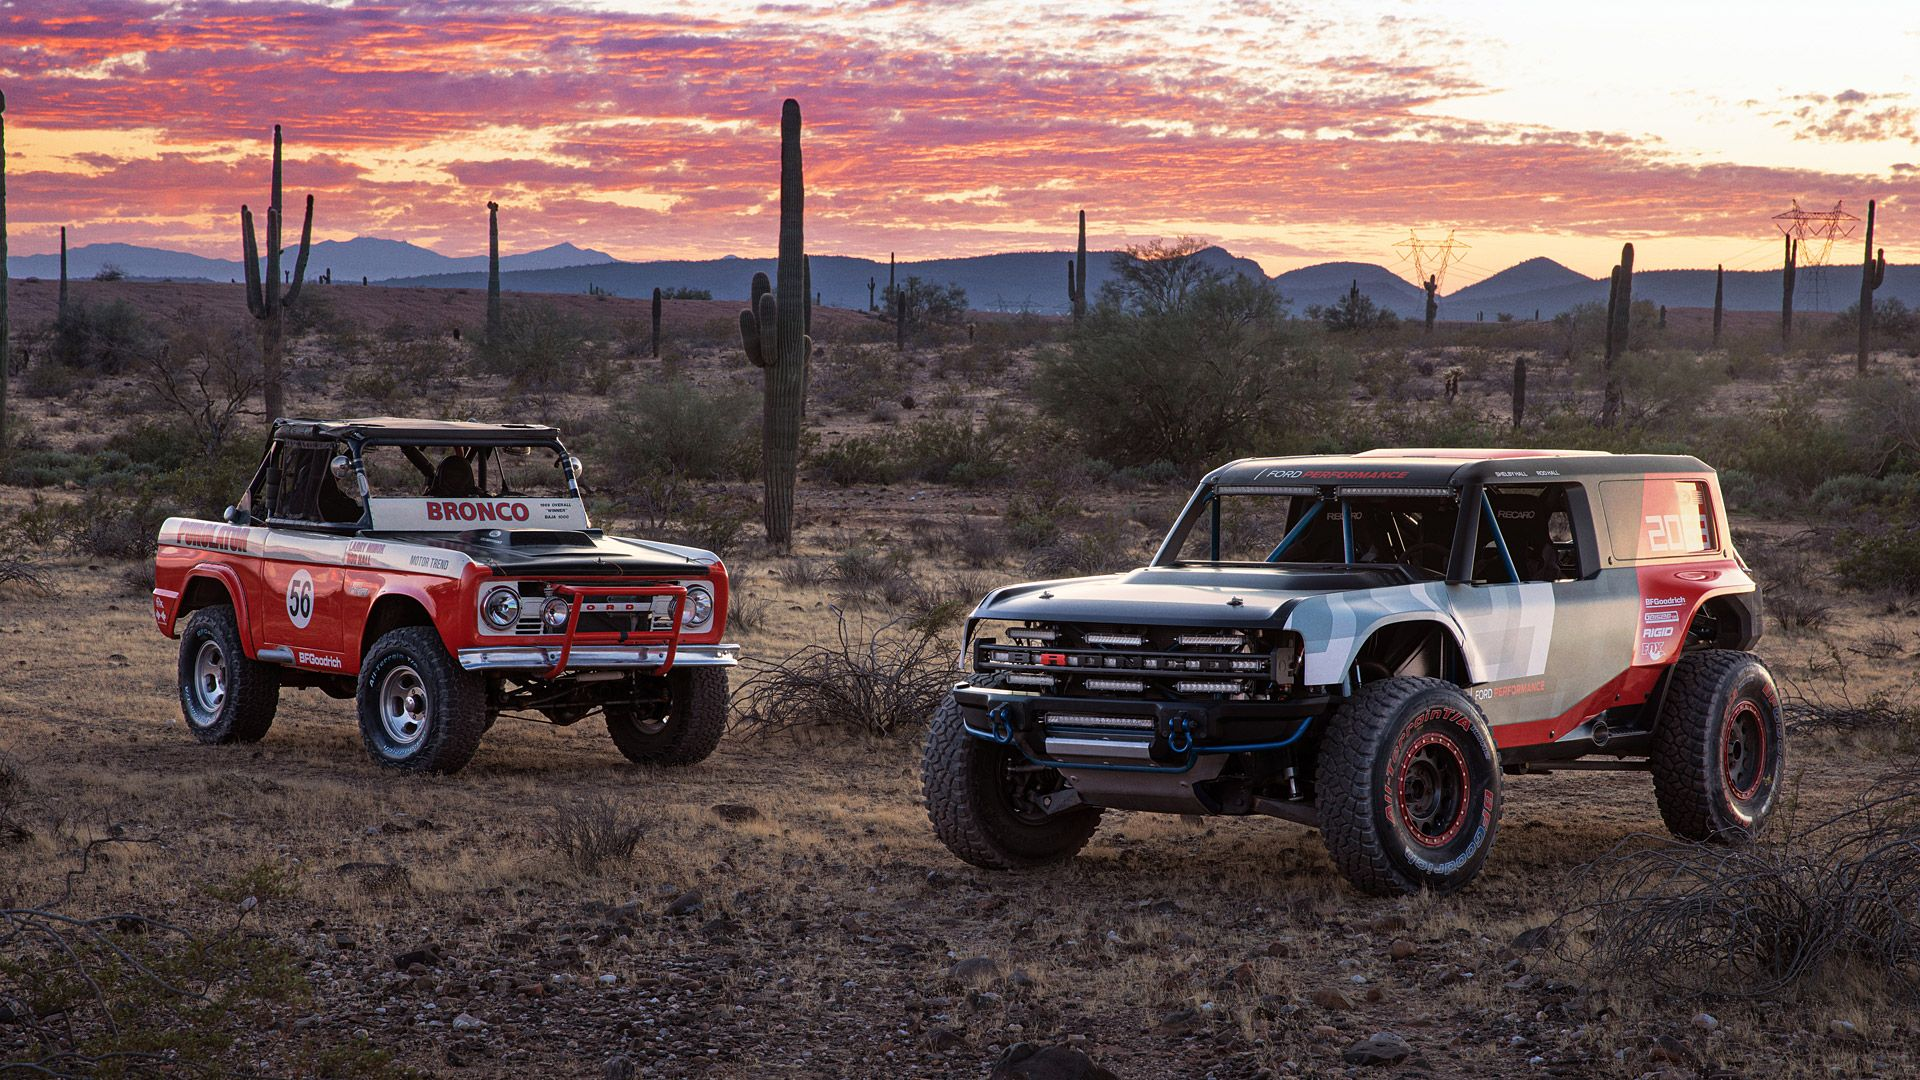 Celebrating 50 Years Since The Bronco Won The Baja 1000 Ford Have